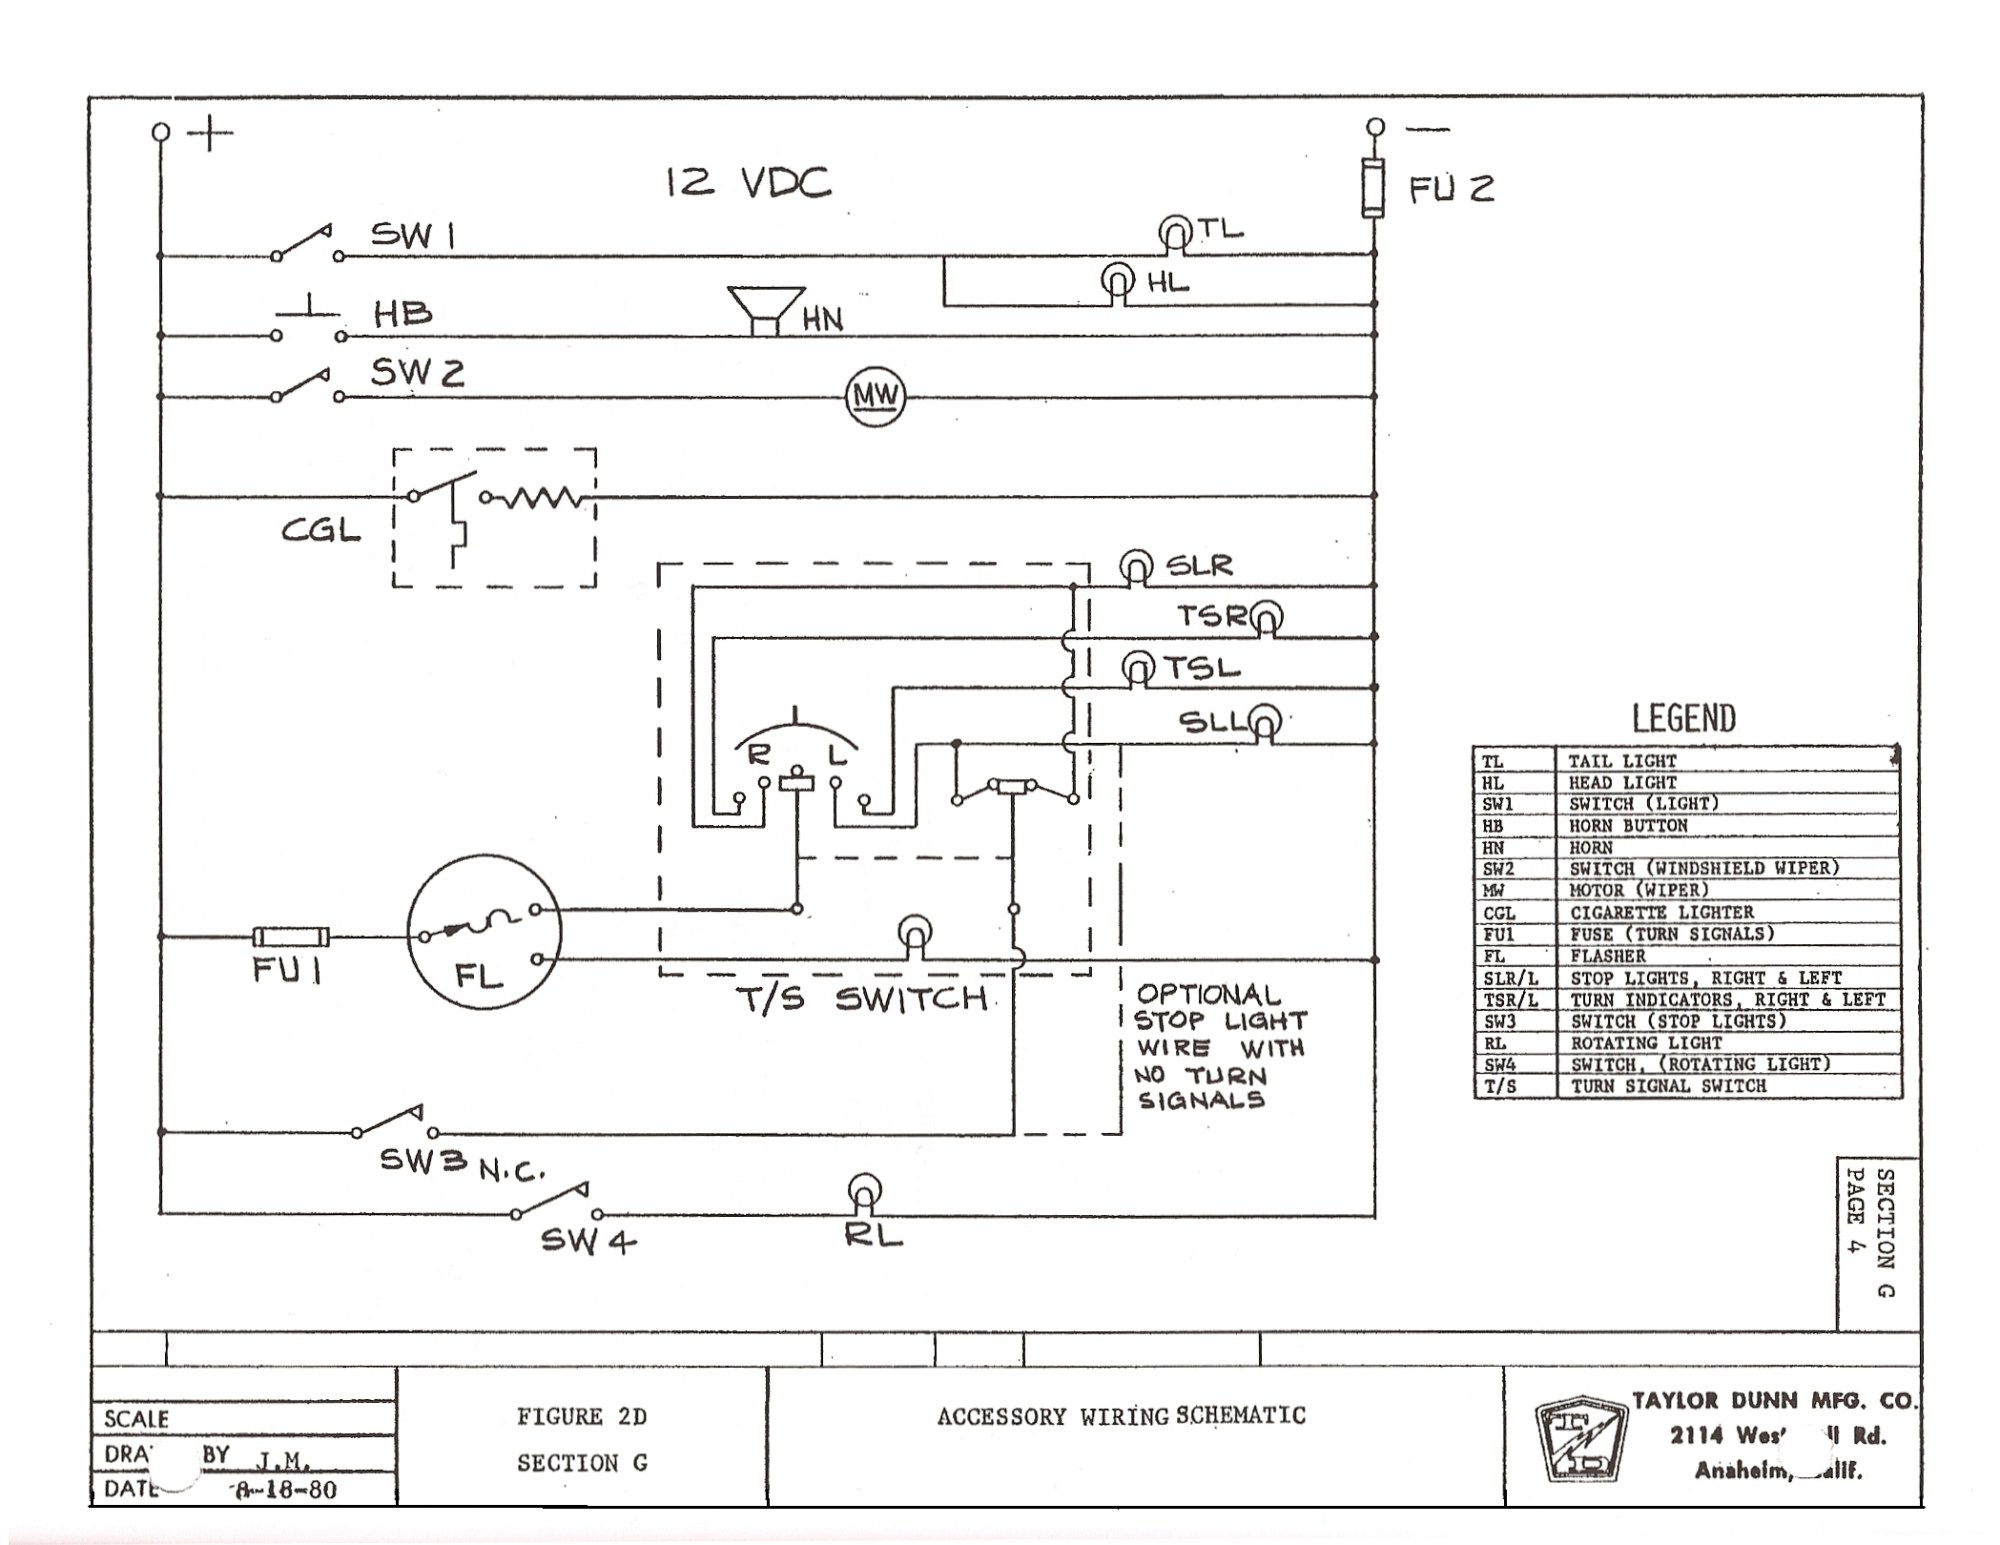 hight resolution of taylor dunn wiring diagram 26 wiring diagram images taylor ice cream machine wiring diagram taylor forklift wiring diagram